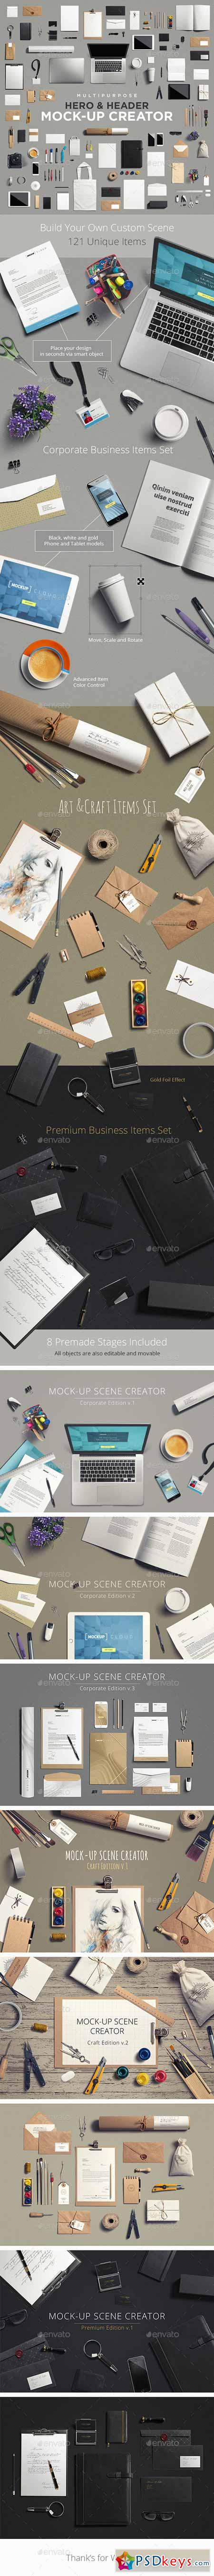 Multipurpose Mock-Up Creator 10428473